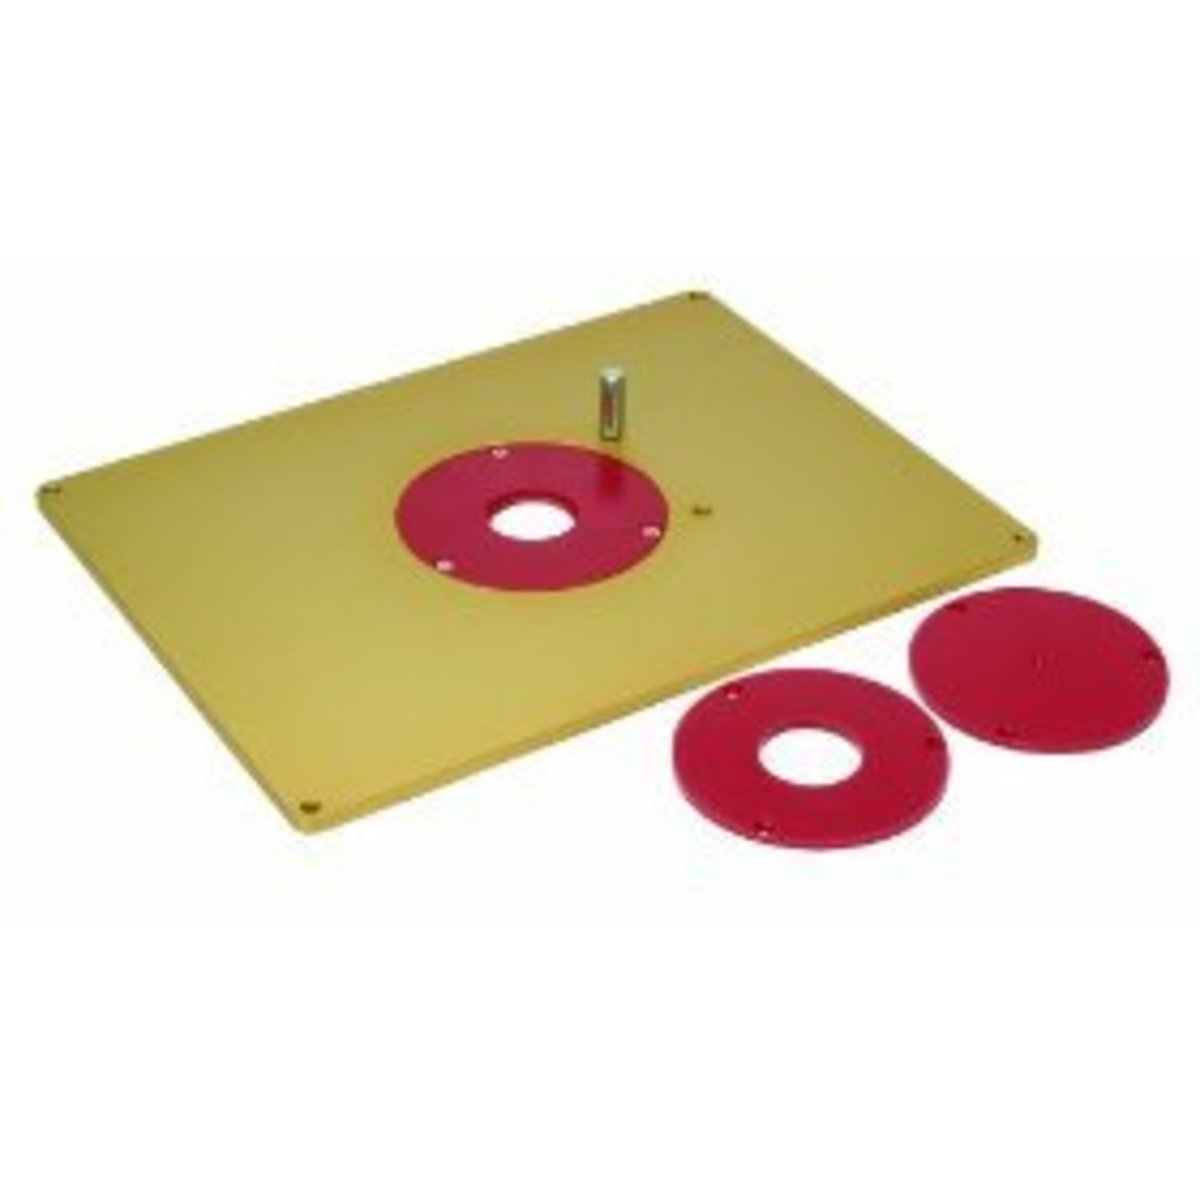 Router table insert plate sizes hubpages aluminum router plate keyboard keysfo